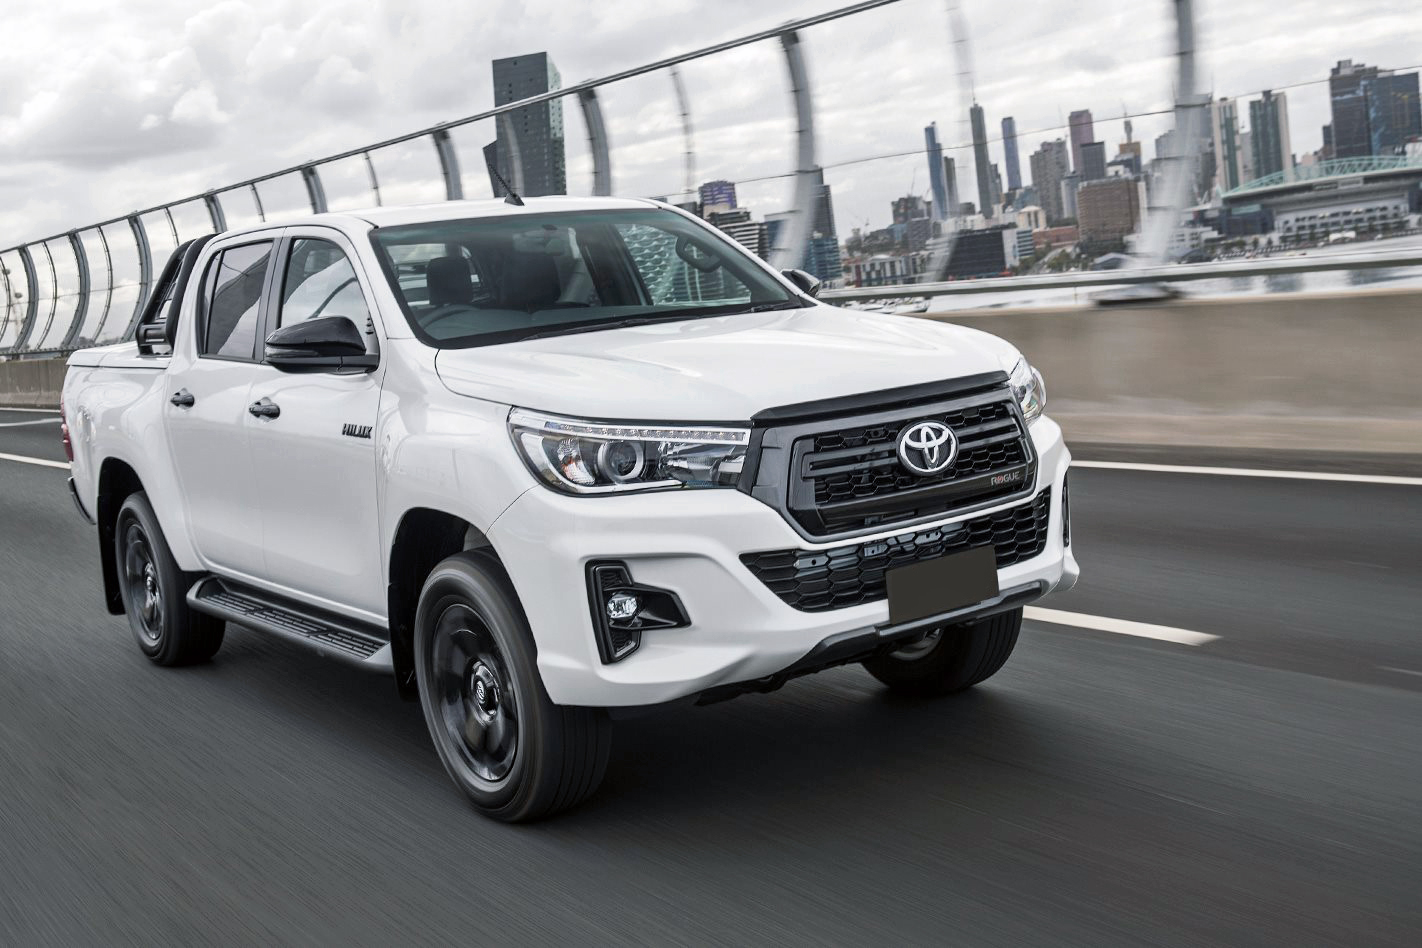 Toyota Sa To Debut Hilux U0026 39 S Fresh Face On Special New Model